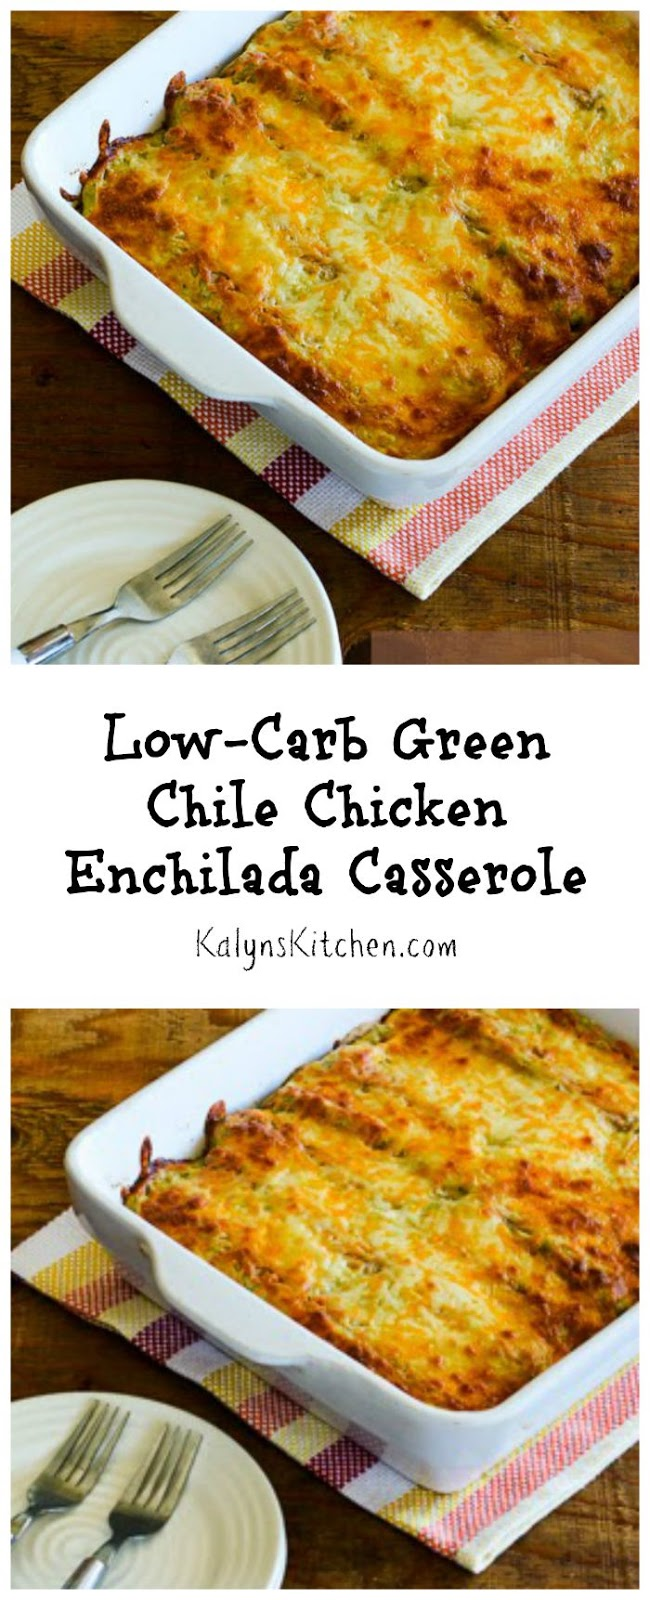 ... -Carb Enchilada Casserole with Red and Green Chiles ~ Kalyns Kitchen